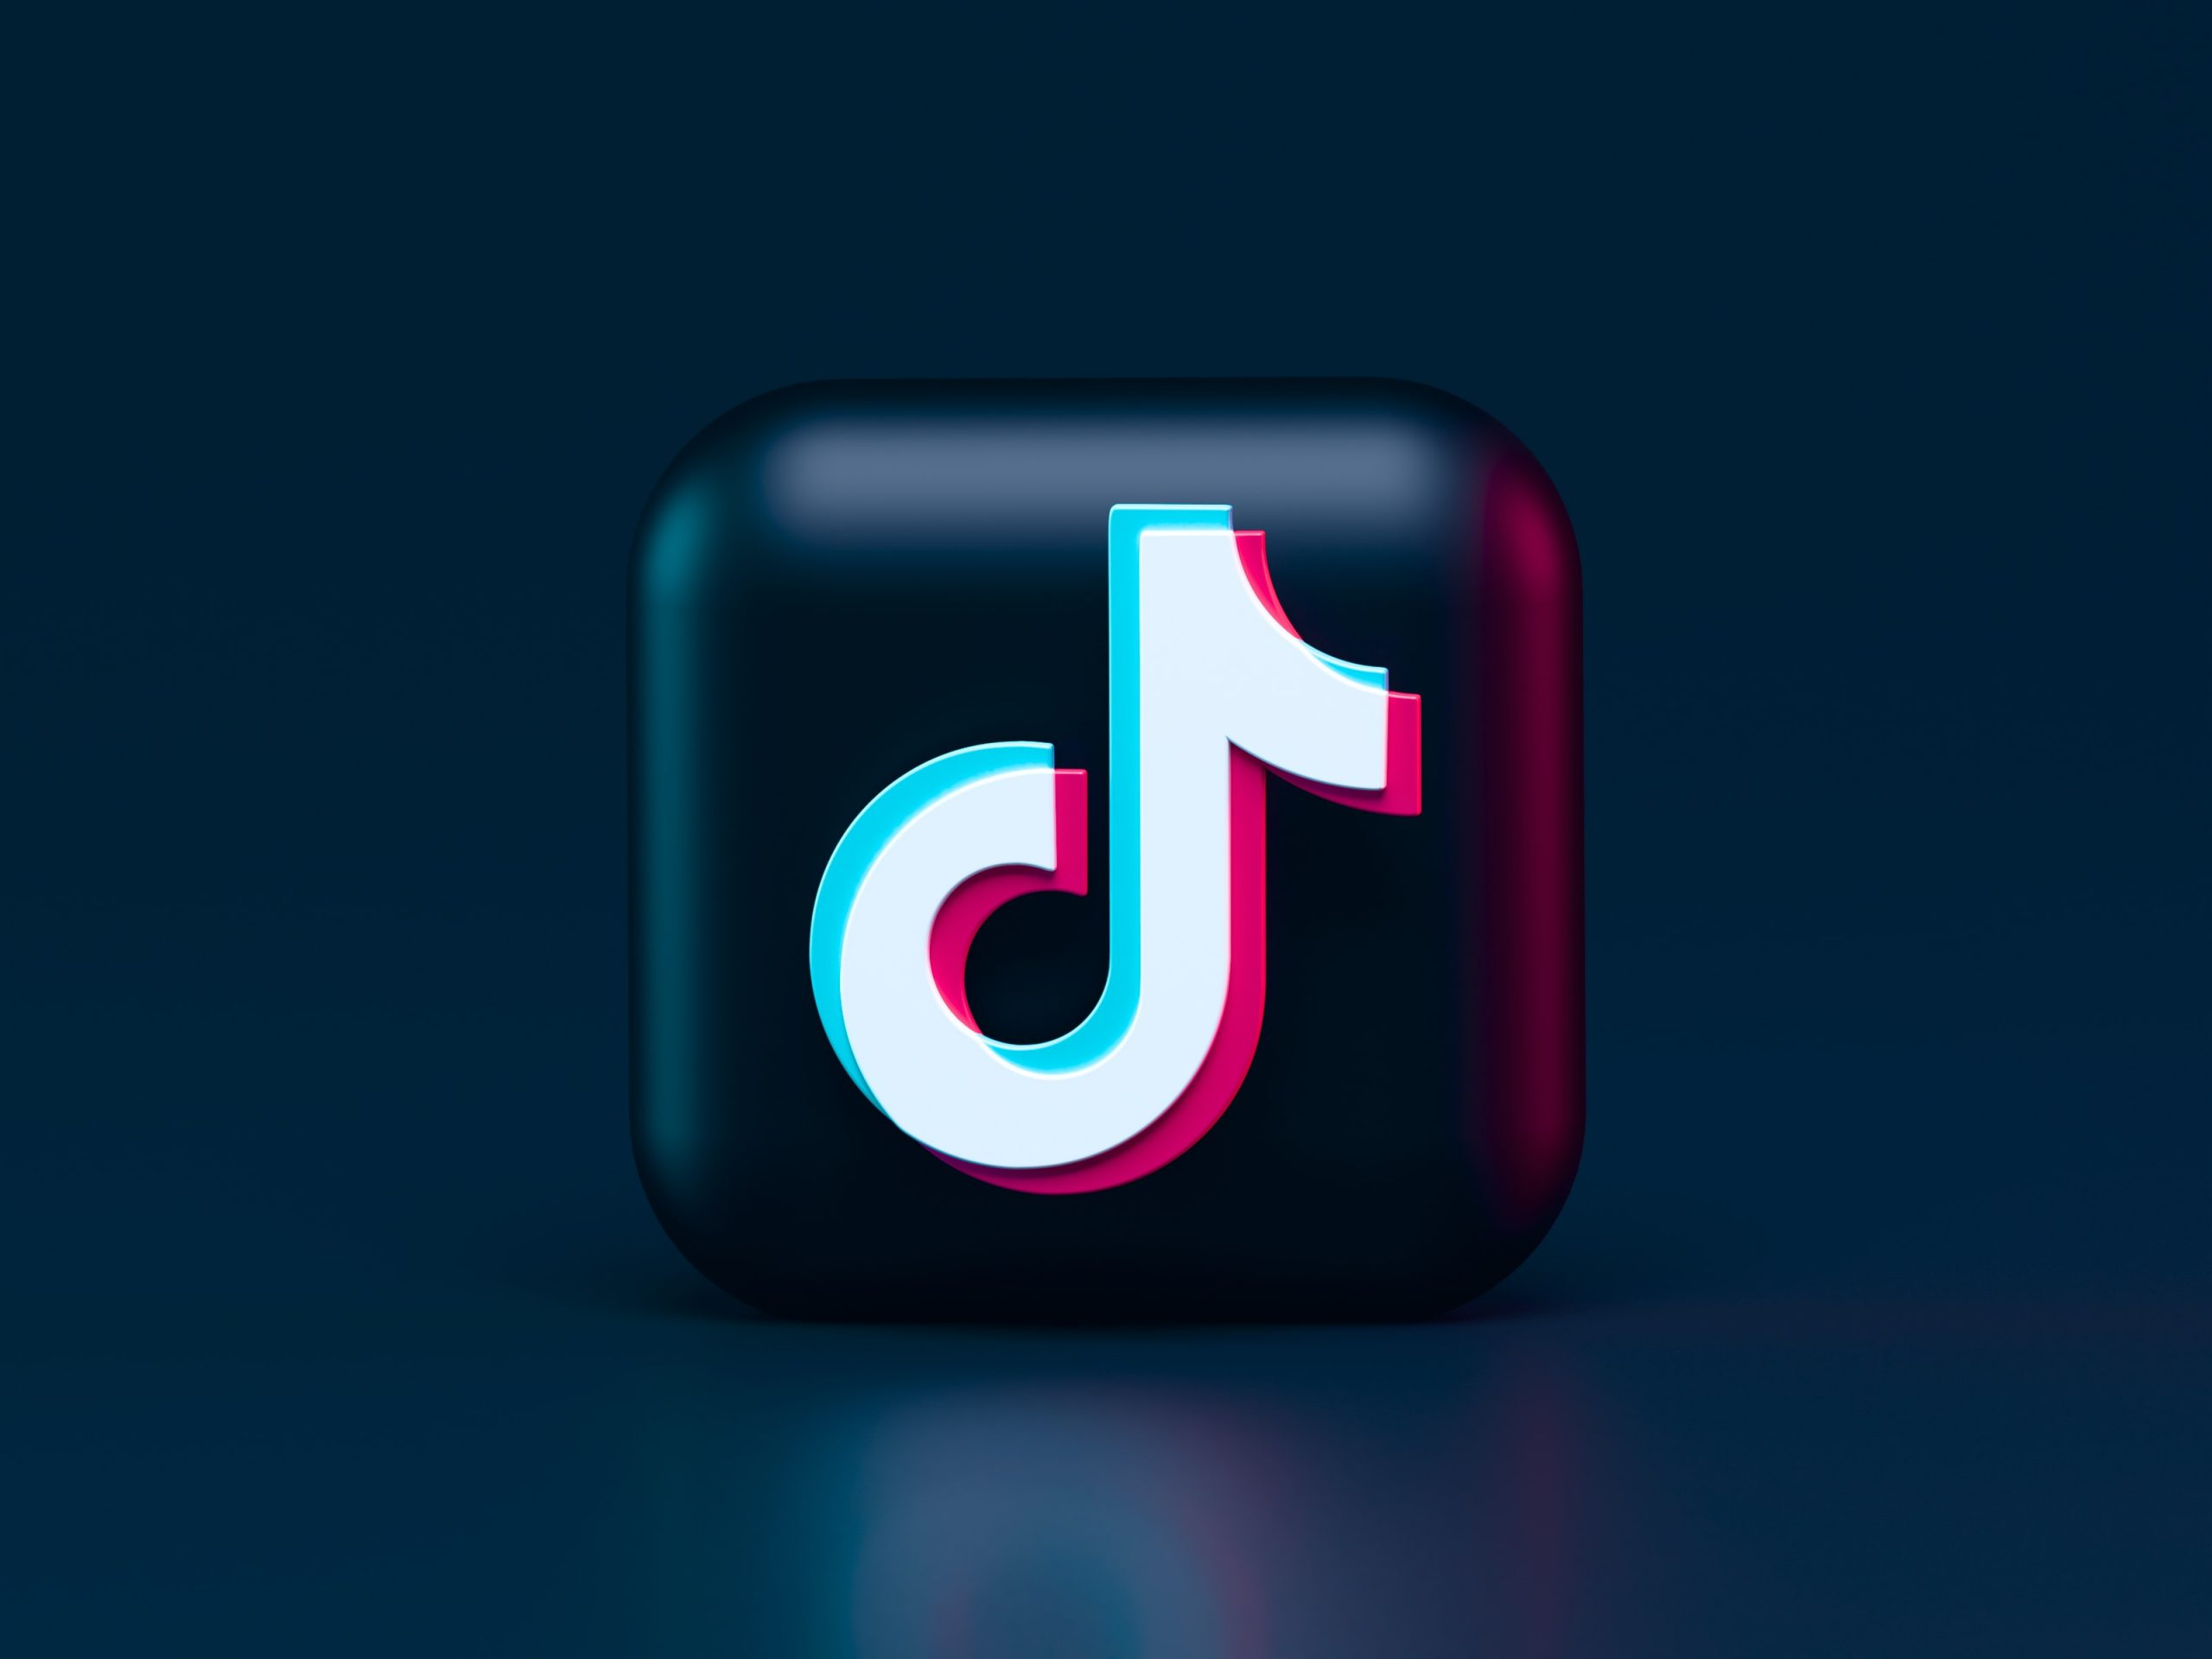 TikTok, get to Gen Z fast (but only Gen Z, for now)